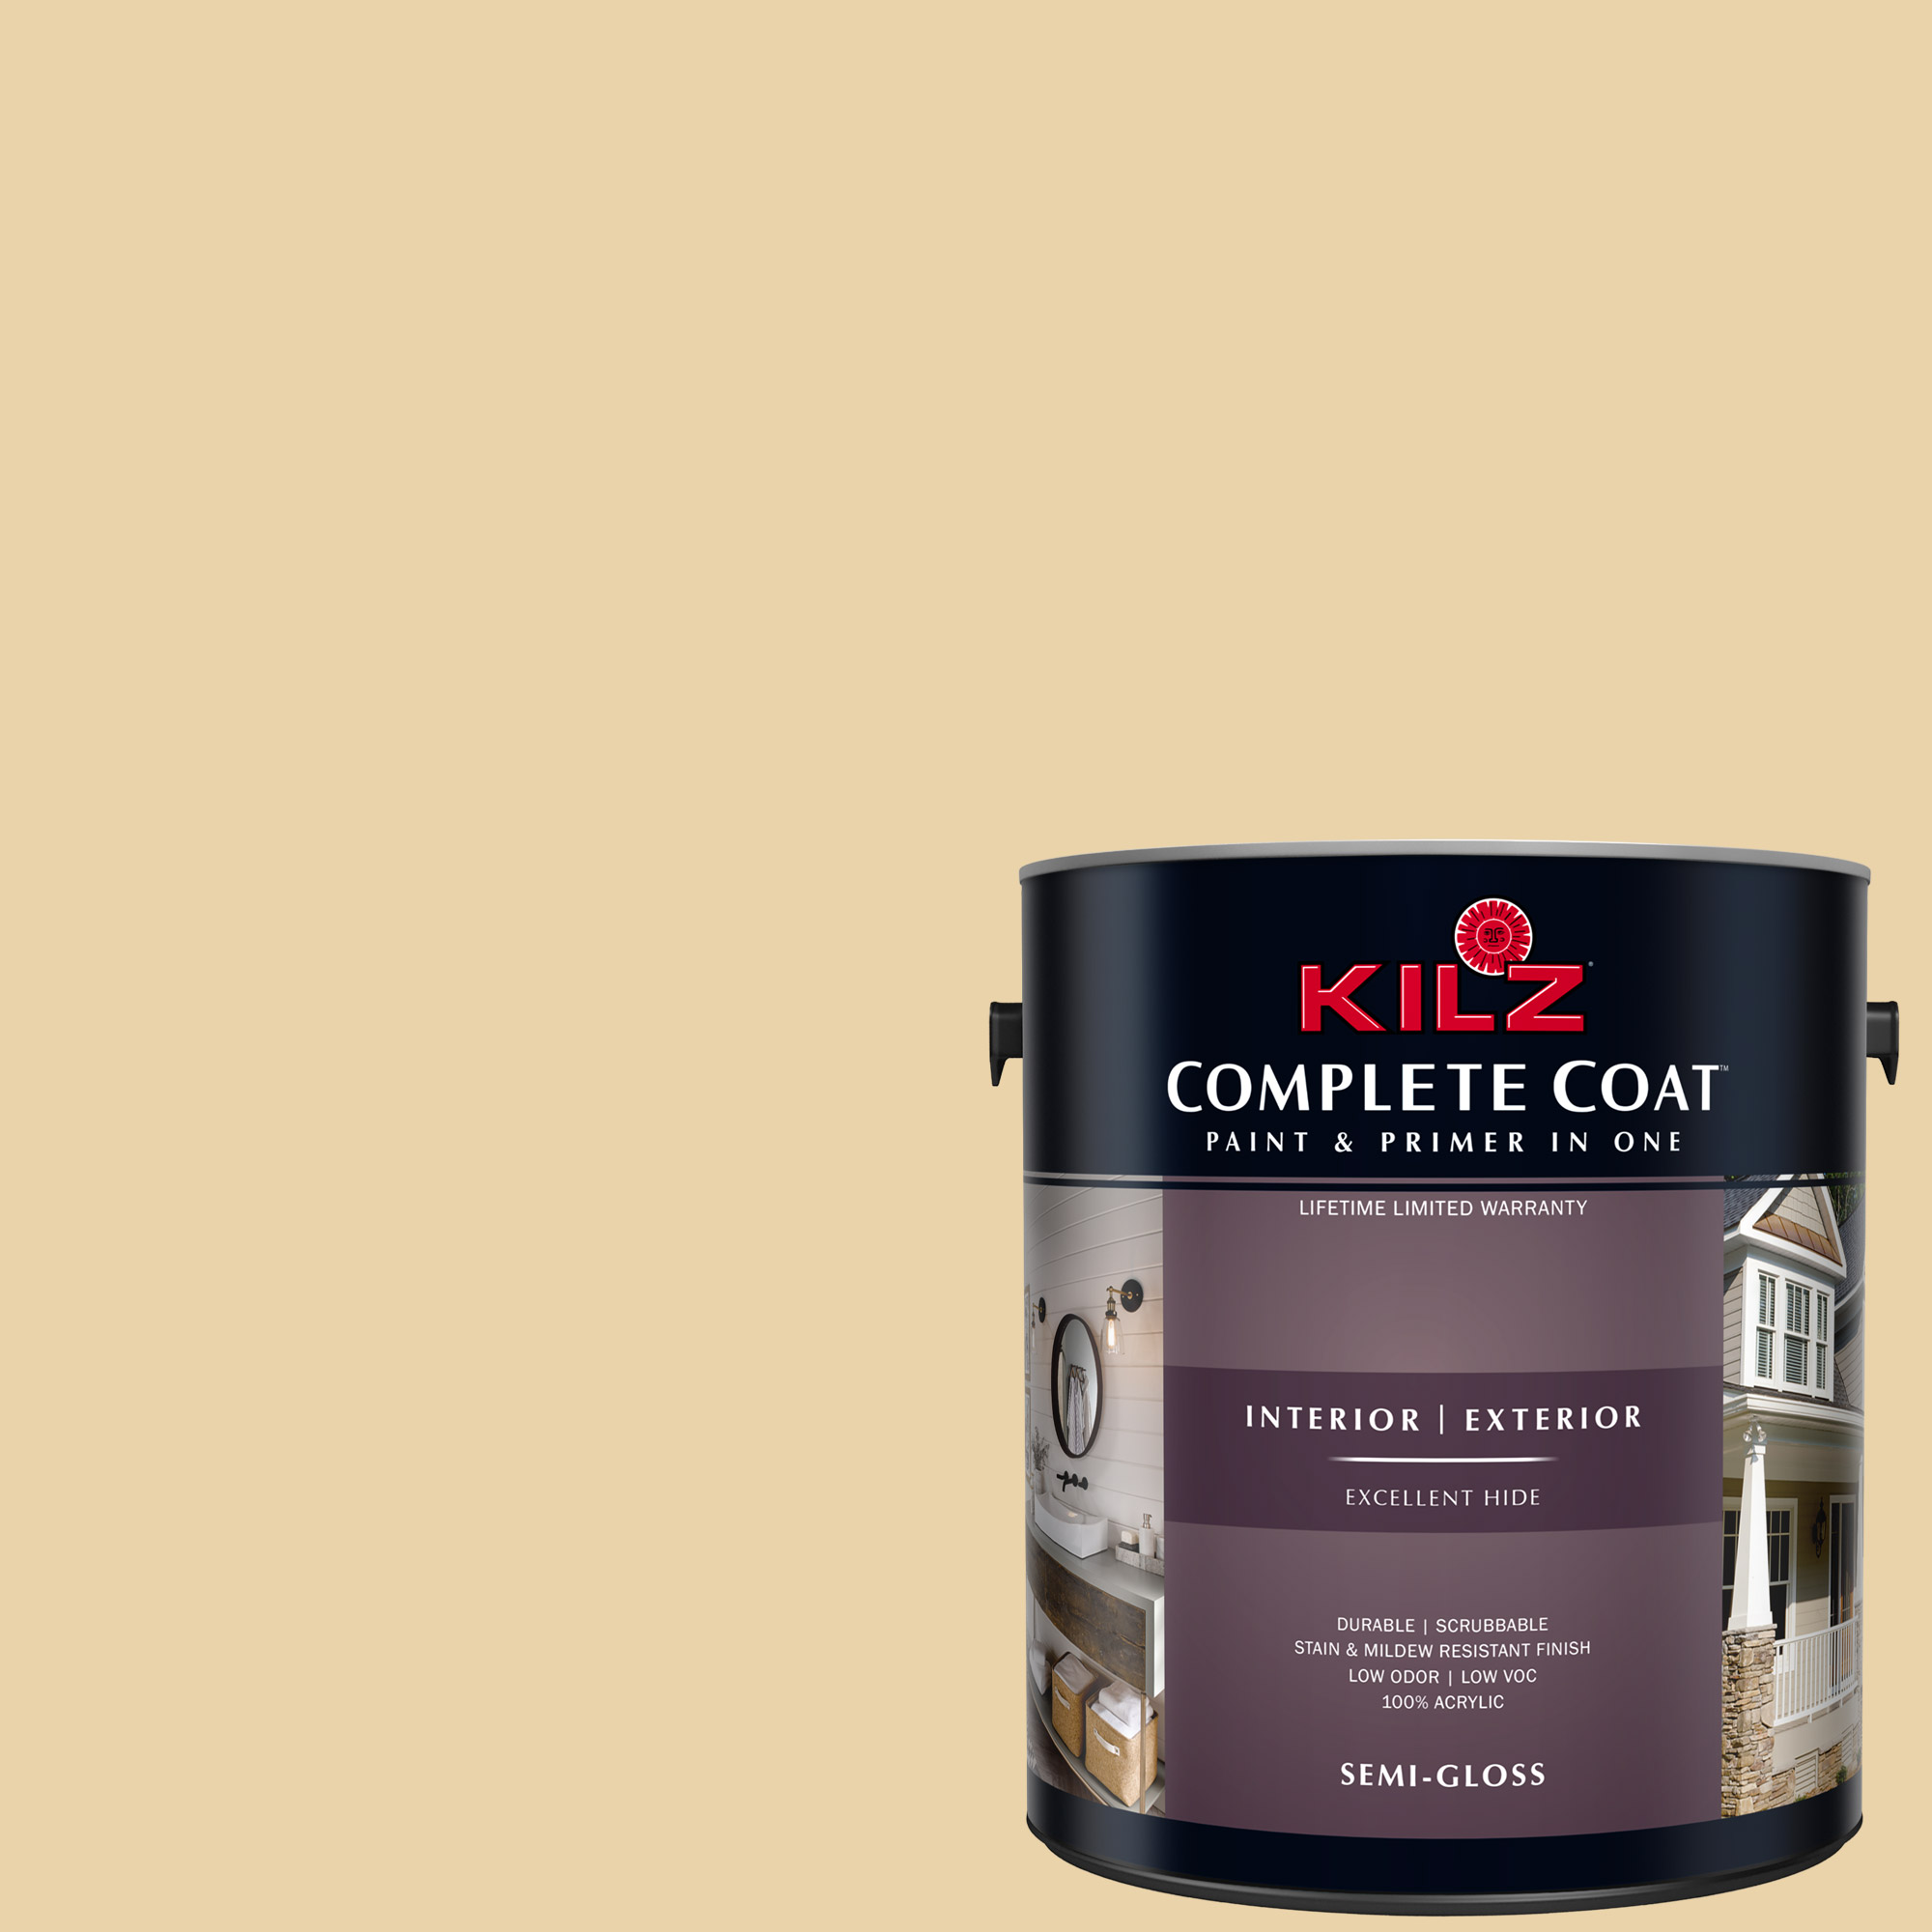 KILZ COMPLETE COAT Interior/Exterior Paint & Primer in One #LE170-02 Goldilocks